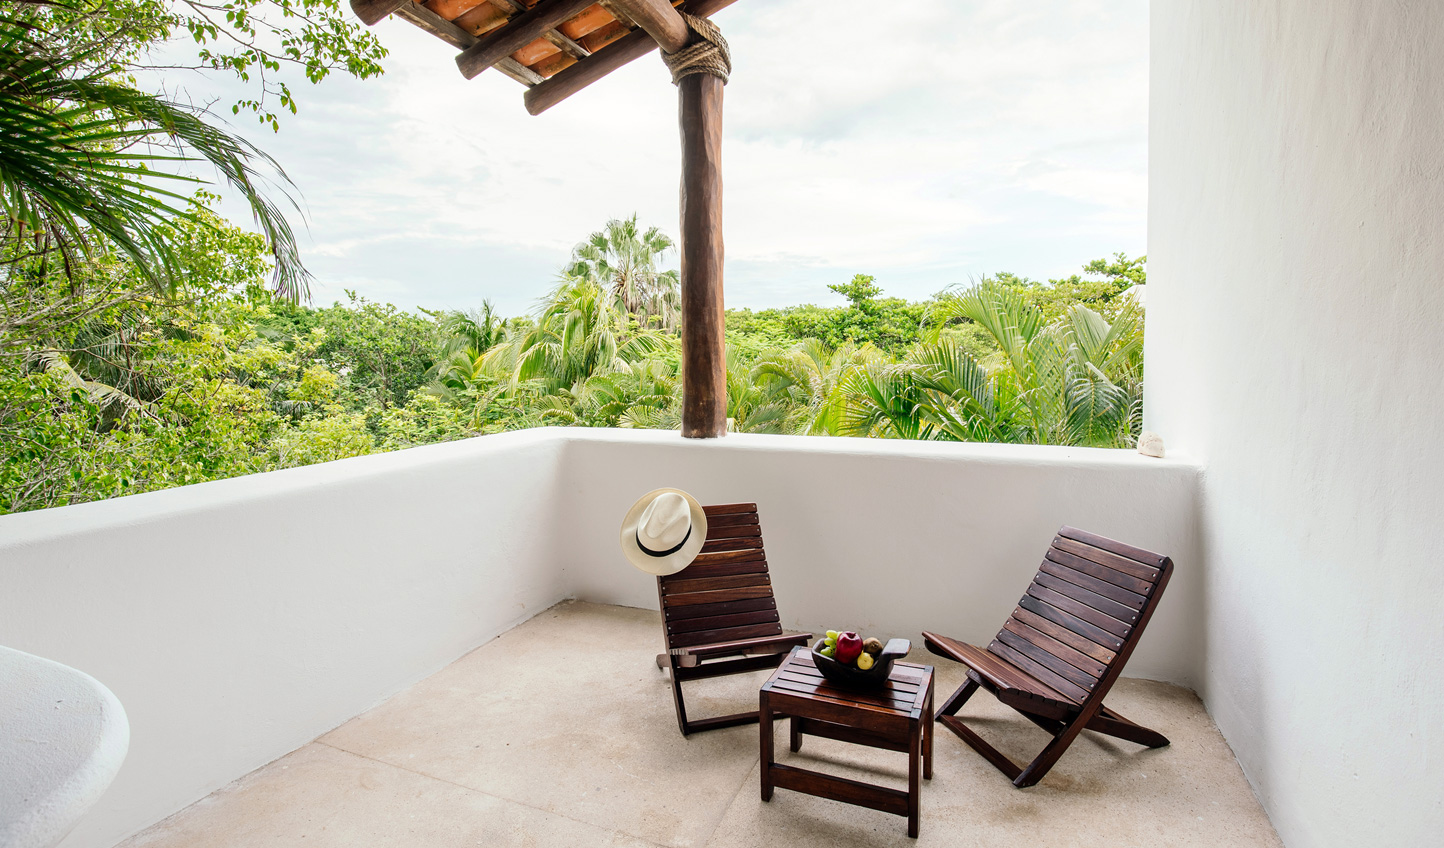 Relax out on your private terrace and listen to the sounds of the jungle